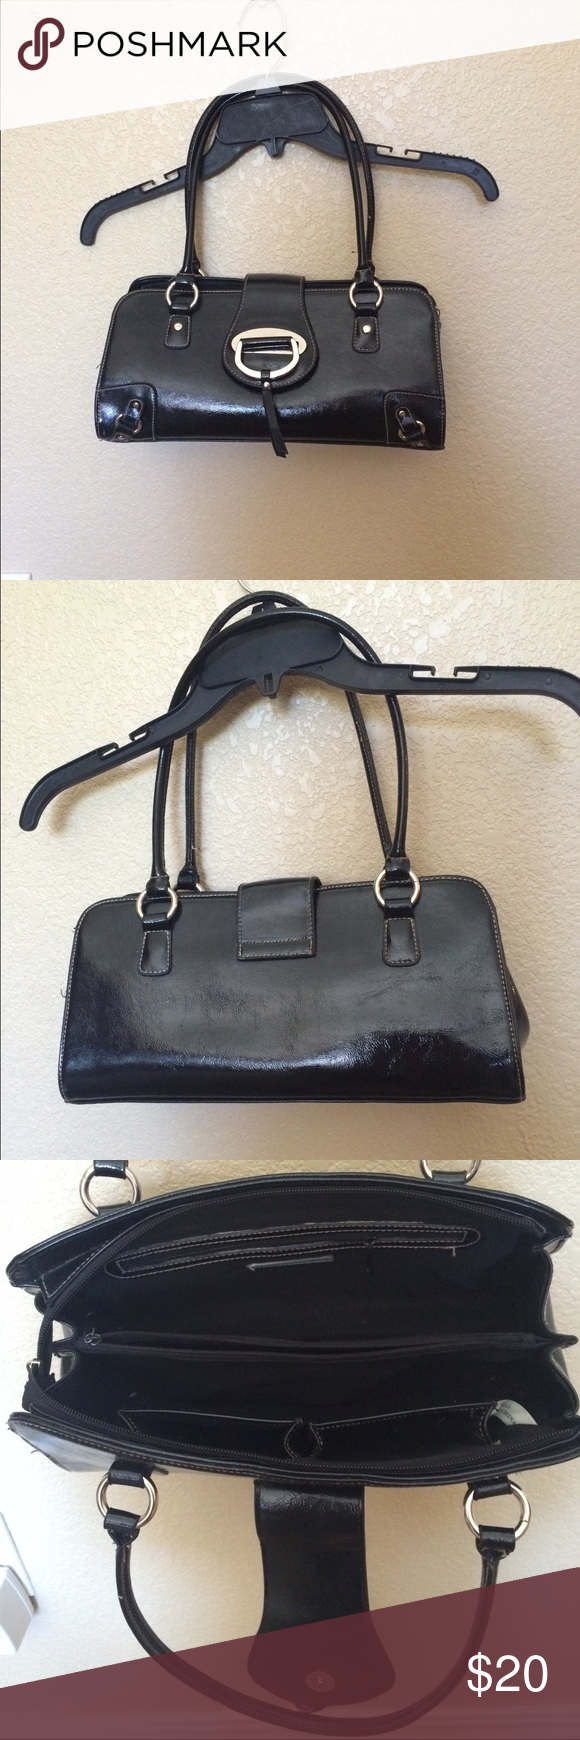 Cute Hillard and Hanson long black purse Black purse with zipper and cute fold over magnetic button to close the purse. Inside the purse is a zipper compartment on one side and two pockets on the other side. In the middle of the purse is another zipper compartment that runs the length of the purse. No visible flaws. Perfect for casual and dressy outfits. Hillard & Hanson Bags Shoulder Bags